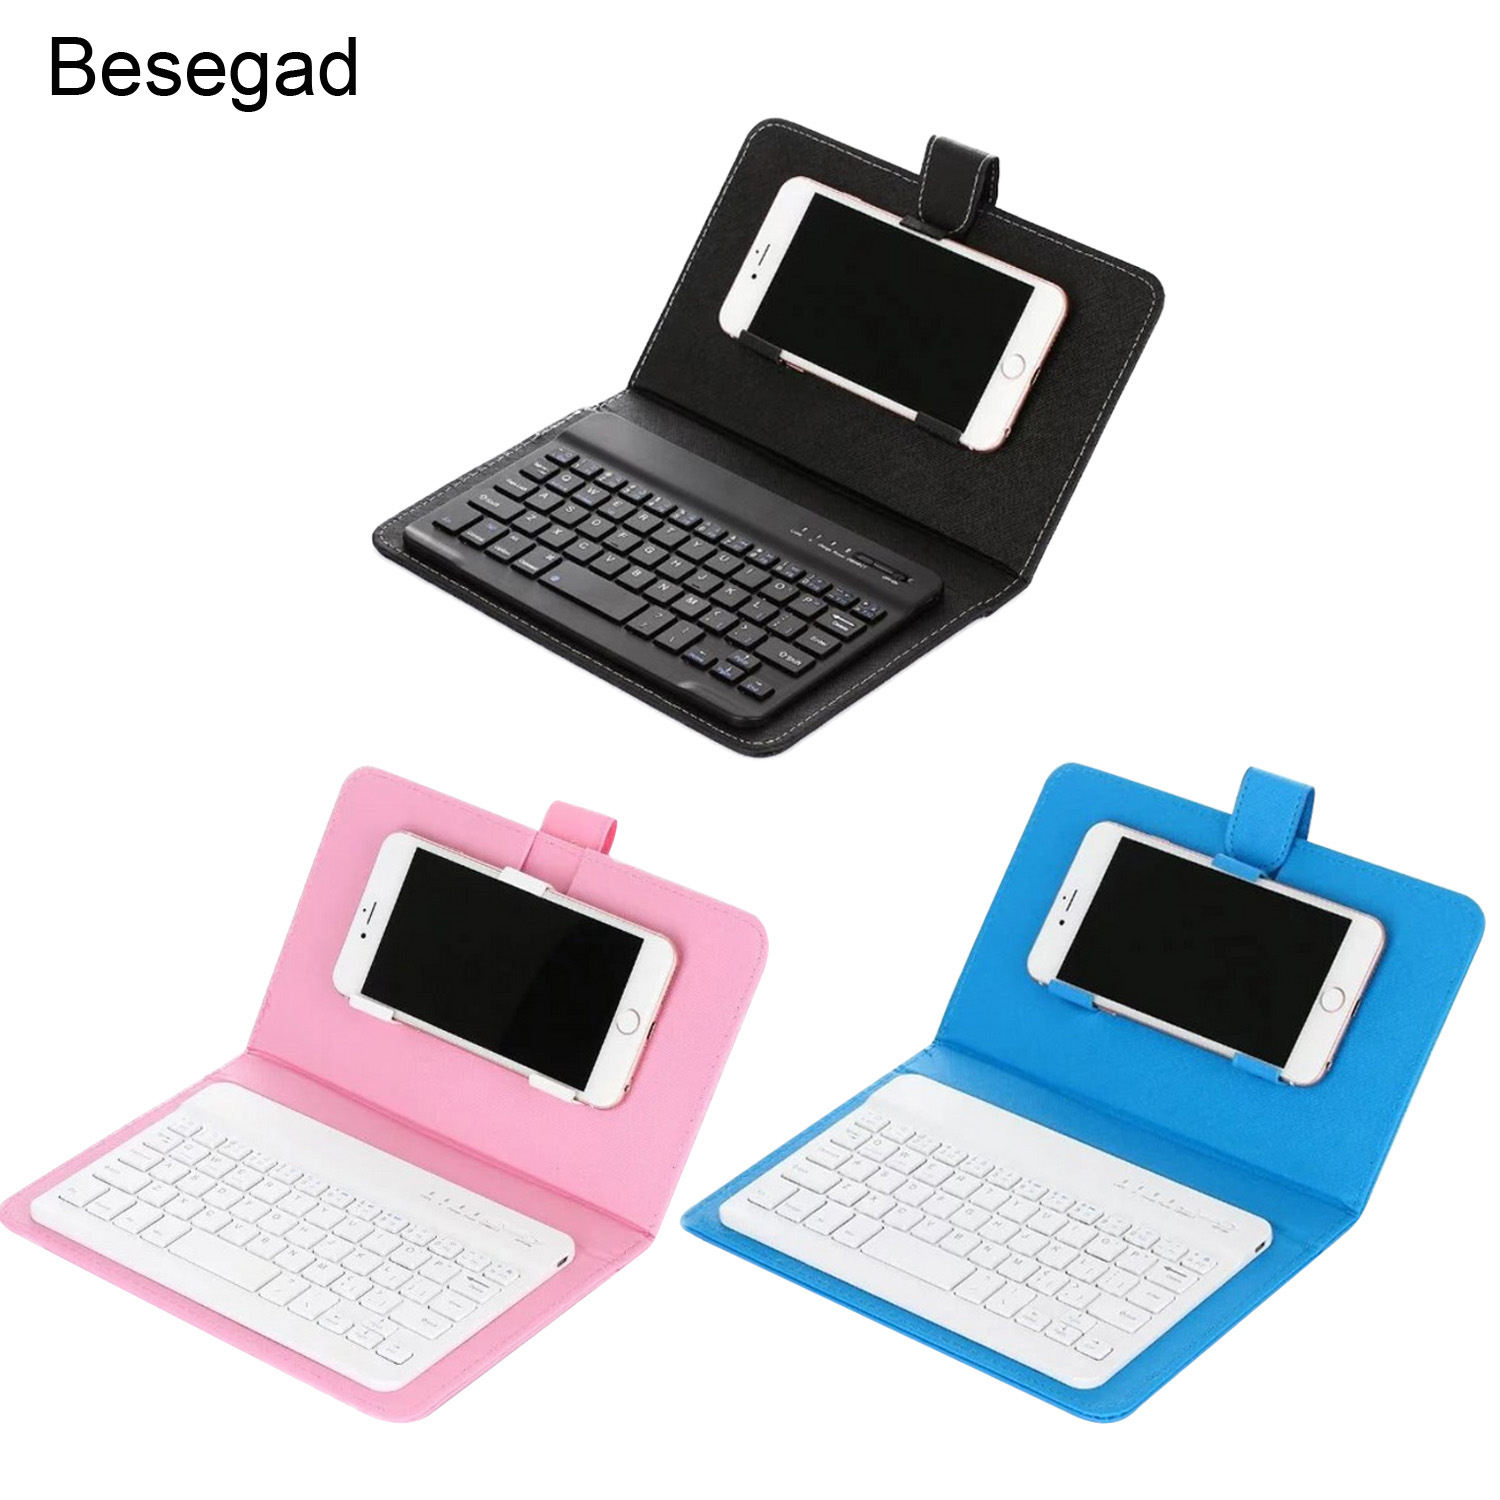 Besegad PU Leather Bluetooth Wireless Keyboard Case Phone Tablet Protective <font><b>Cover</b></font> for iPhone 7 8 X 10 iPad Huawei Xiaomi Samsung image